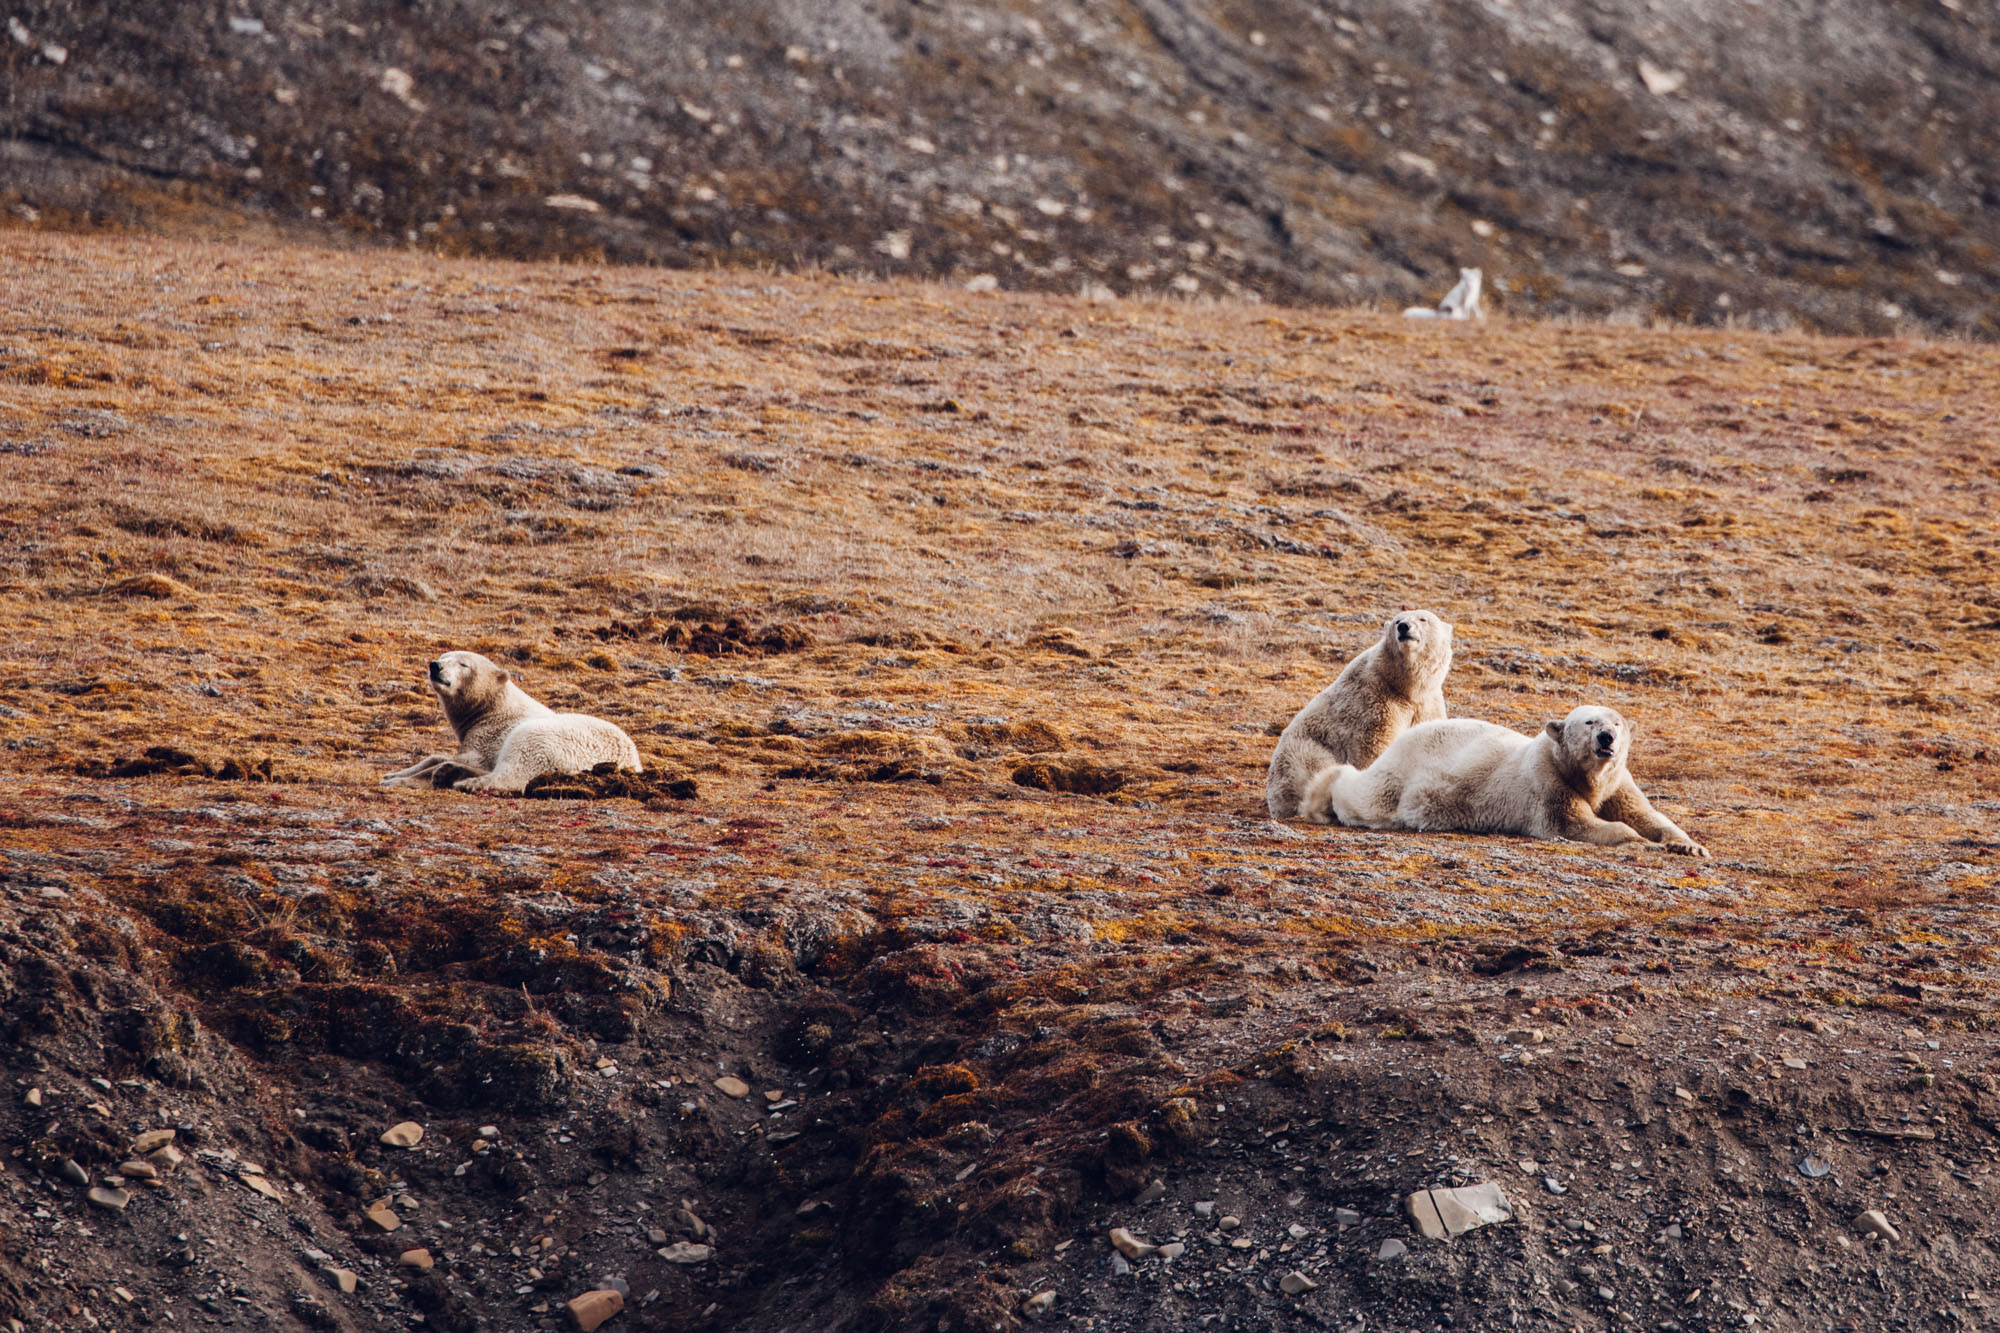 Mother Polar bear and bear cubs in Spitsbergen, Svalbard, Norway